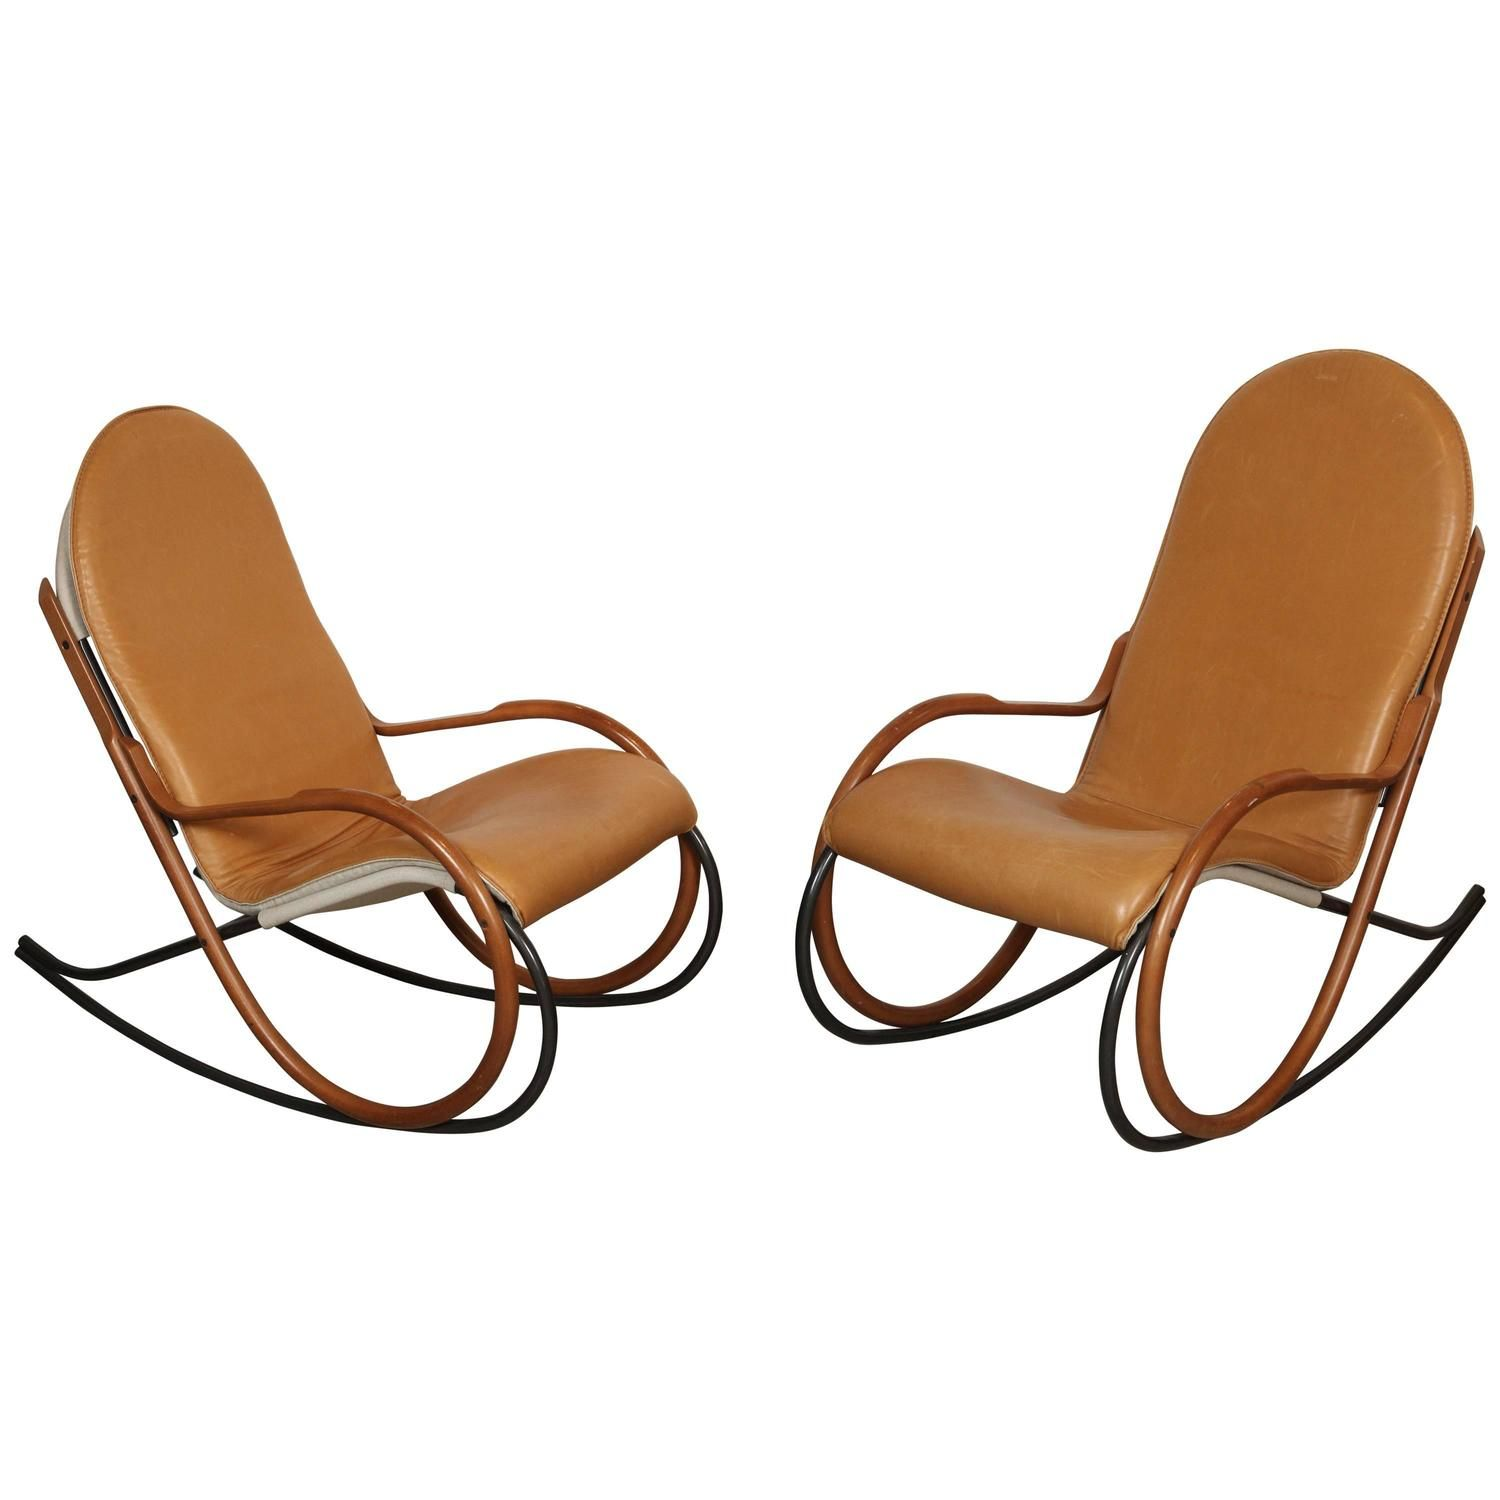 Unique Lounge Chairs pair of paul tuttle rocking chairs | from a unique collection of